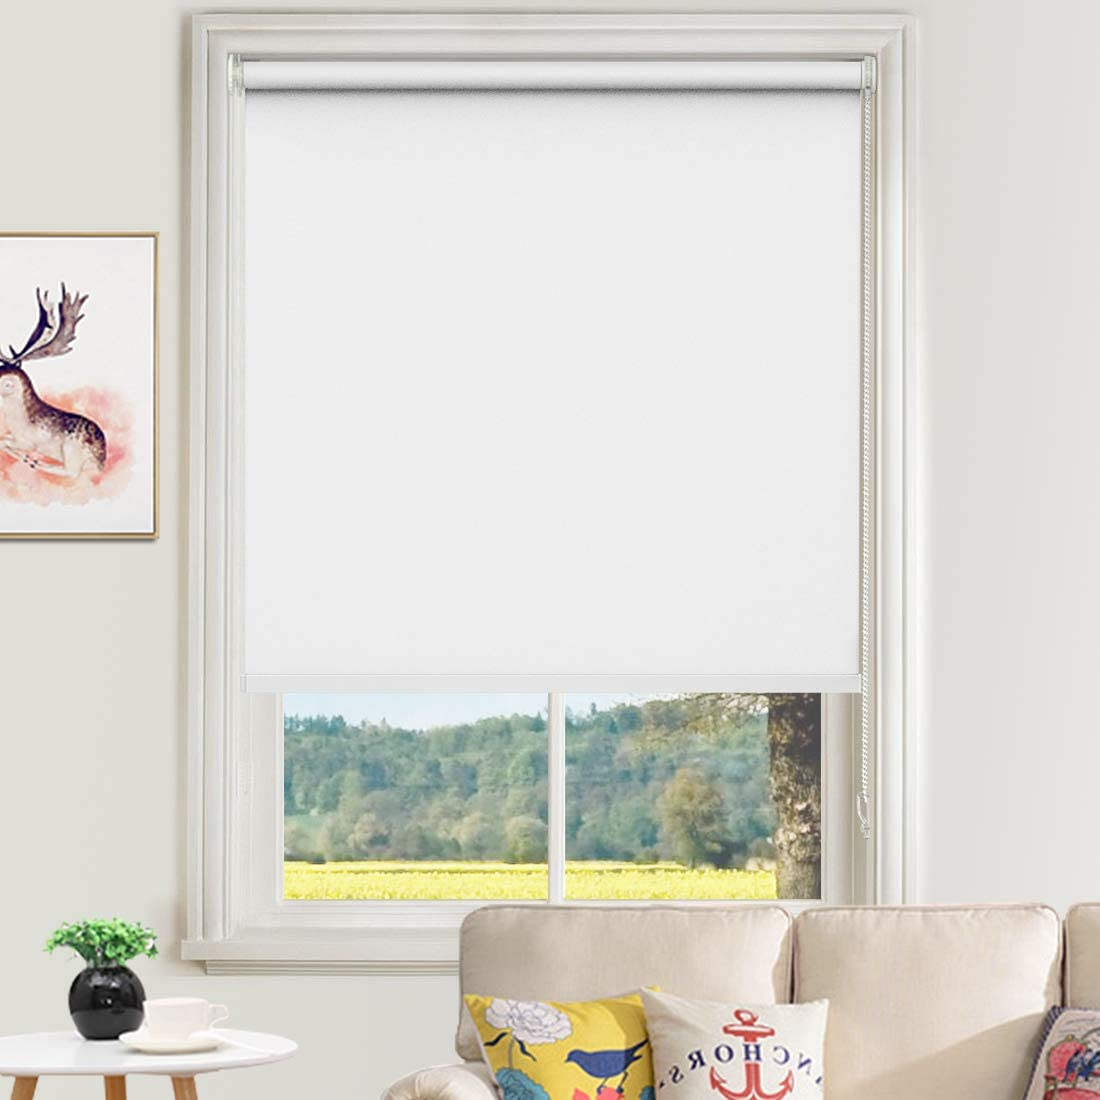 MiLin Window Shades No Tools 100% Blackout Roller Shades and Blinds, Fast Delivery Interior Window Blinds Home Darkening Coverings Easy to Install - Custom Size Polar White 14